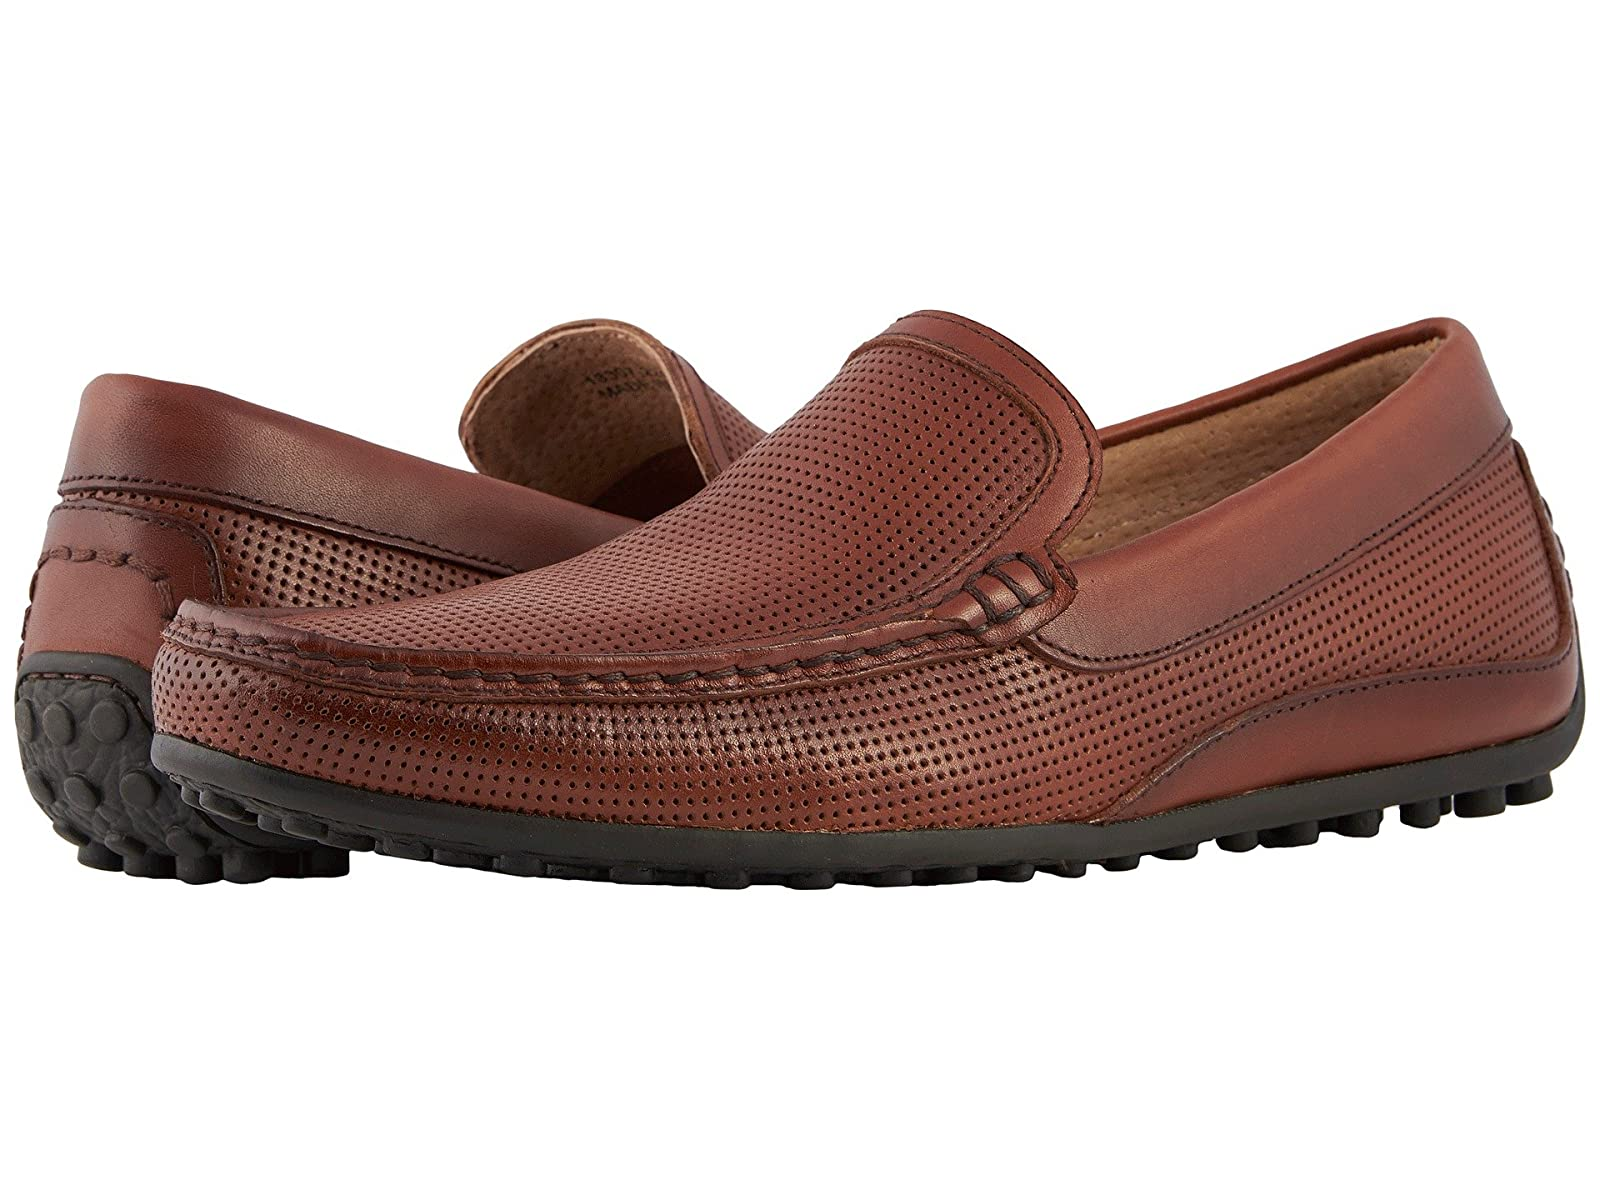 Florsheim Oval Perf DriverAtmospheric grades have affordable shoes